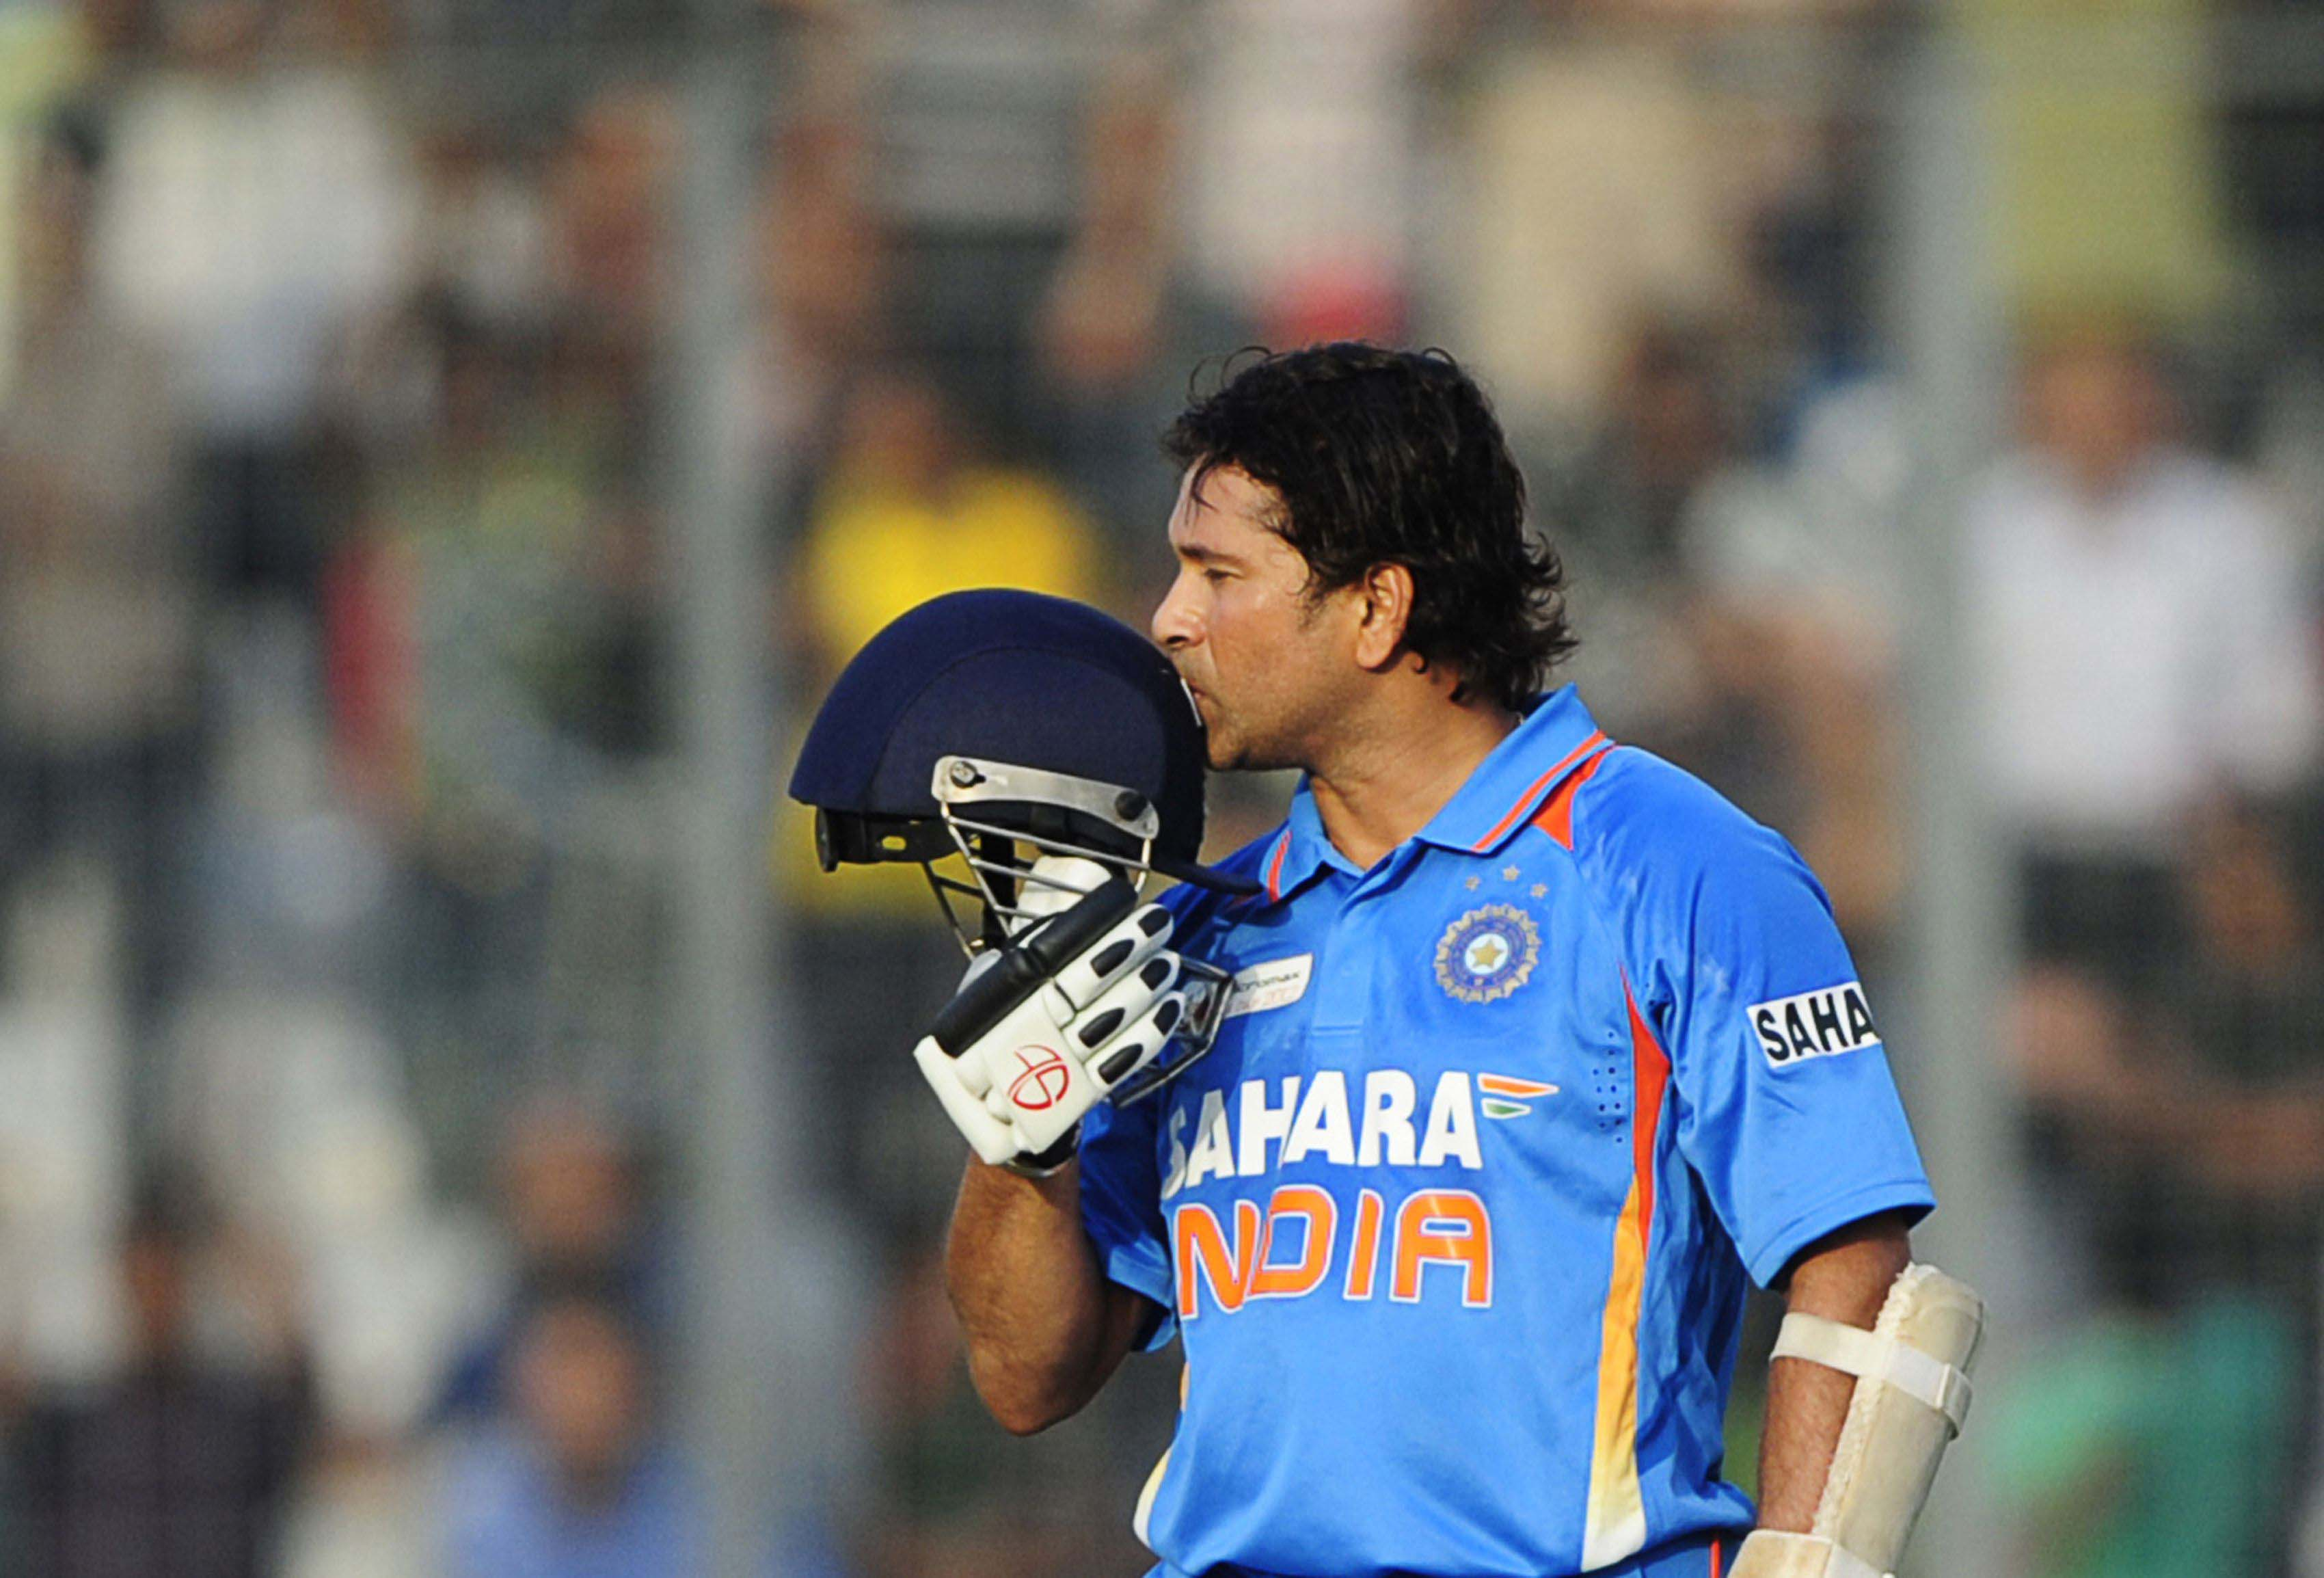 beautiful sachin tendulkar giving kiss to helmet for putting century